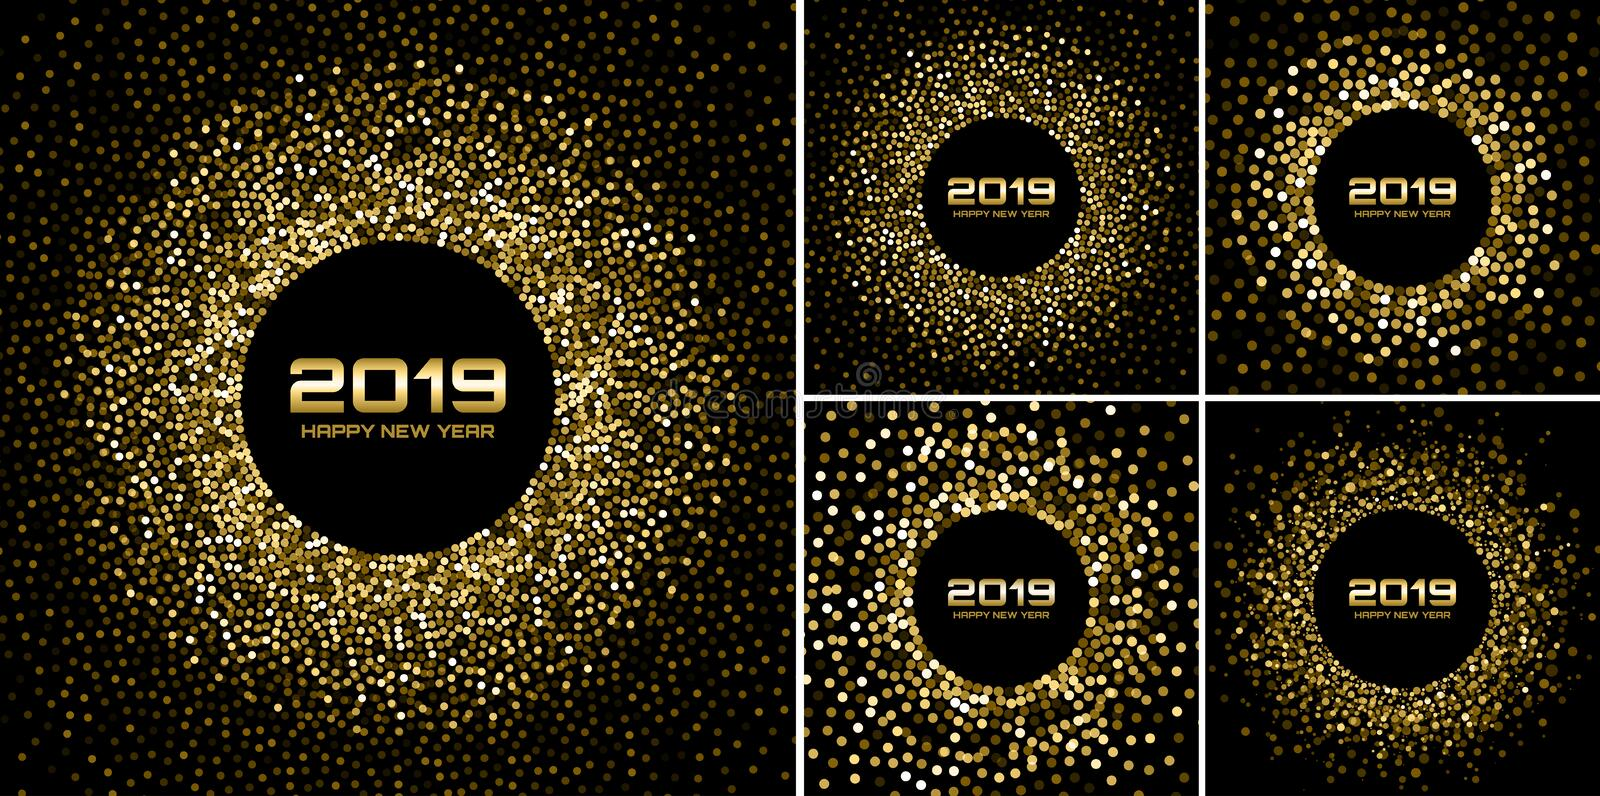 New Year 2019 Card Backgrounds set. Gold glitter paper confetti. Glistening Golden Disco Lights. royalty free illustration